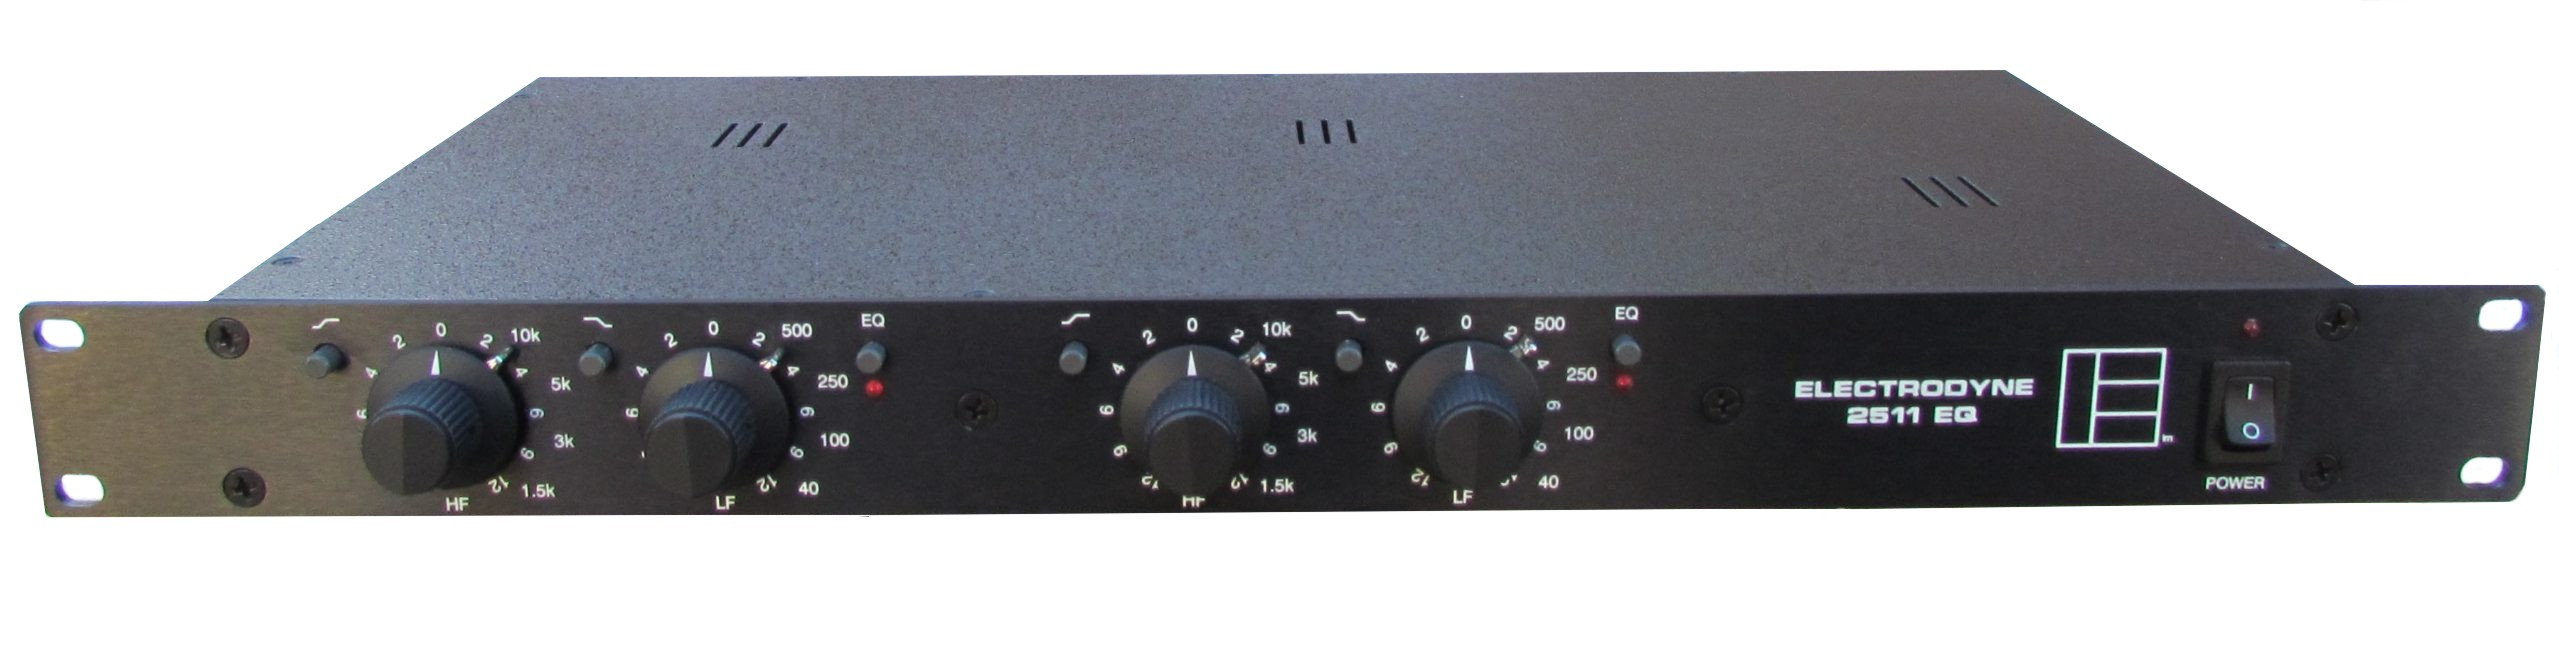 Electrodyne Unveils 2501 Preamp And 2511 Eq At Aes 2013 Transaudio Active Microphone Preamplifier Using Lf356 Is A Classic Two Channel Band Discrete Transistor Reciprocal Inductor Based Equalizer Late 60s Early 70s Design Technology